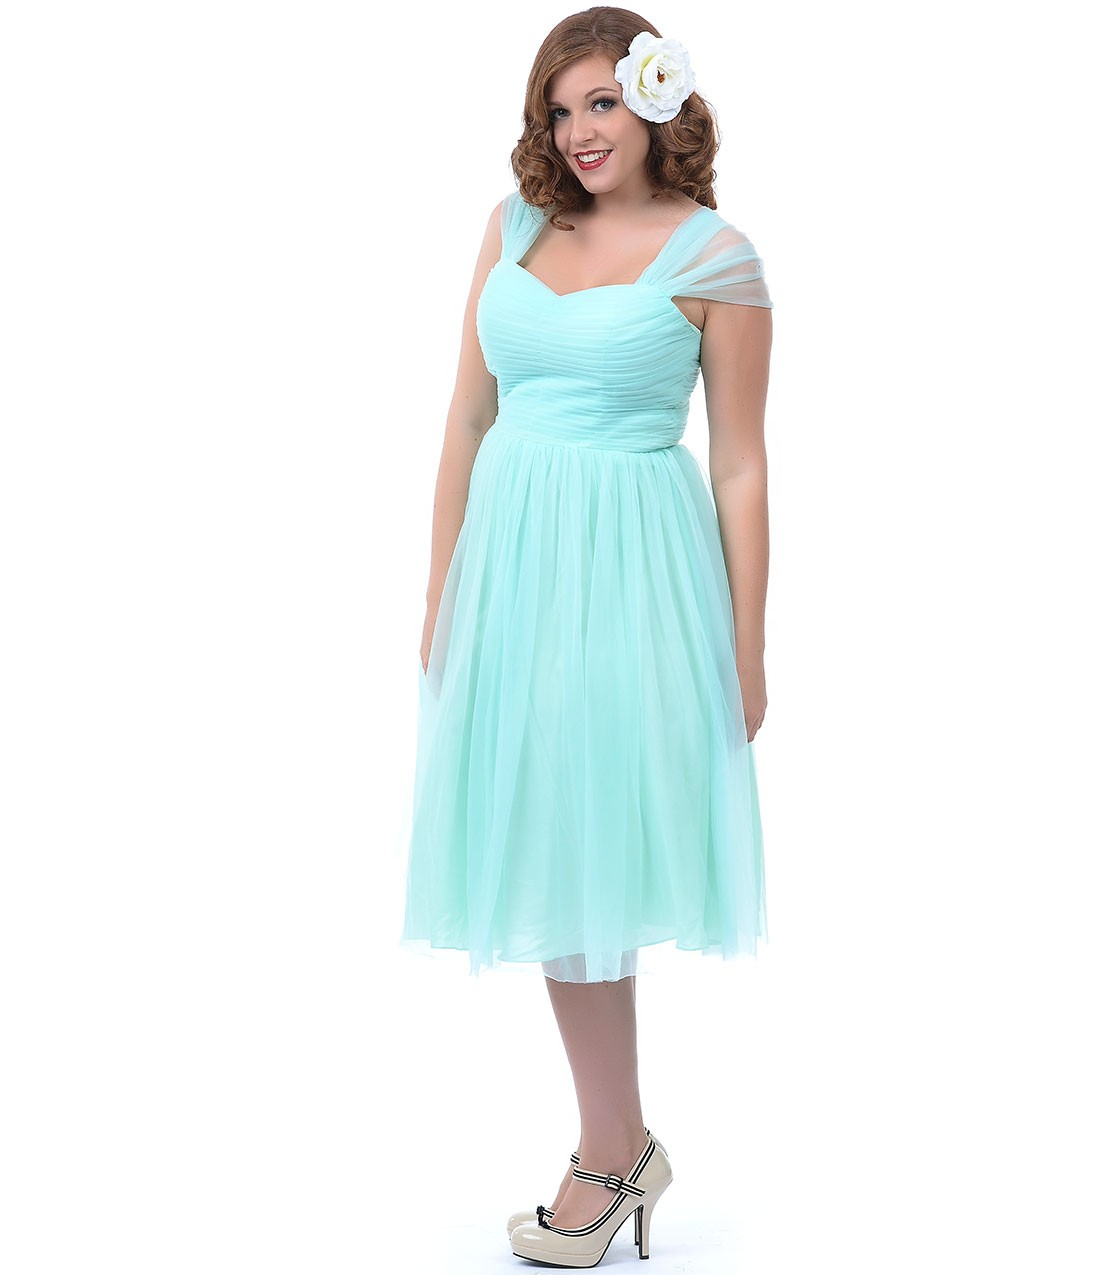 Plus size bridesmaid dresses black party dresses plus size bridesmaid dresses ombrellifo Images